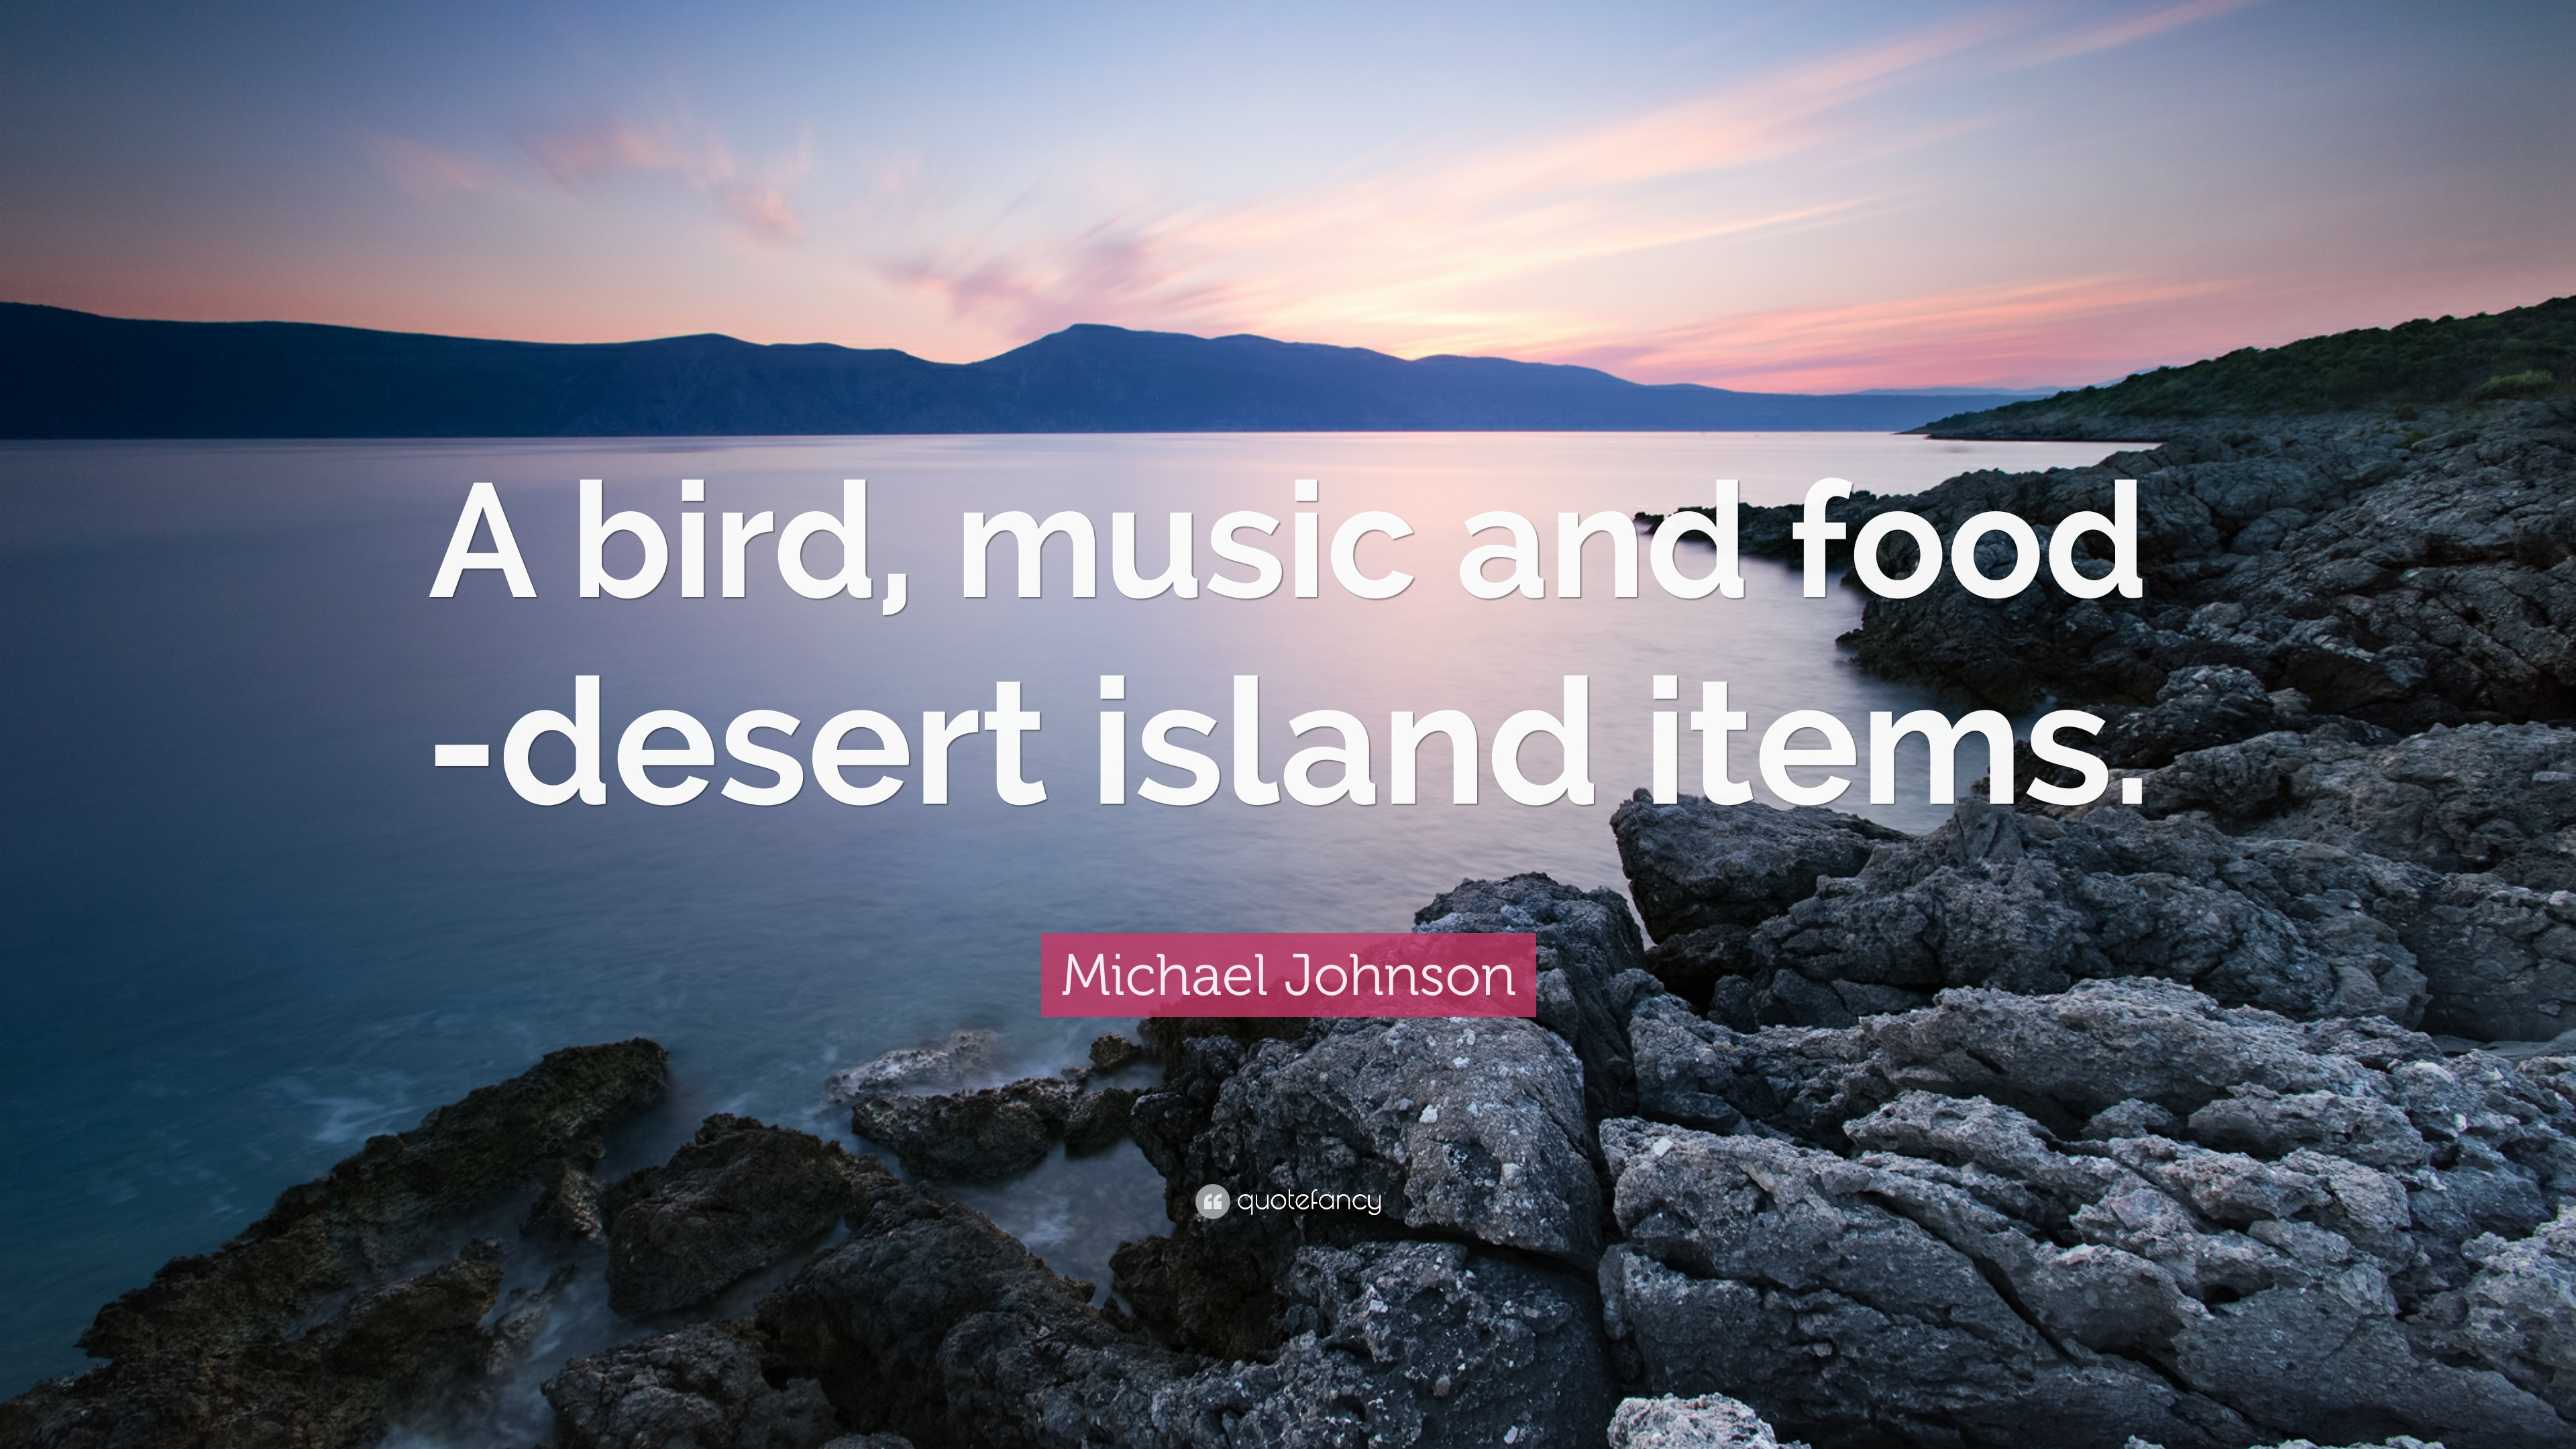 Download Wallpaper Music Food - 971039-Michael-Johnson-Quote-A-bird-music-and-food-desert-island-items  Gallery_90579.jpg